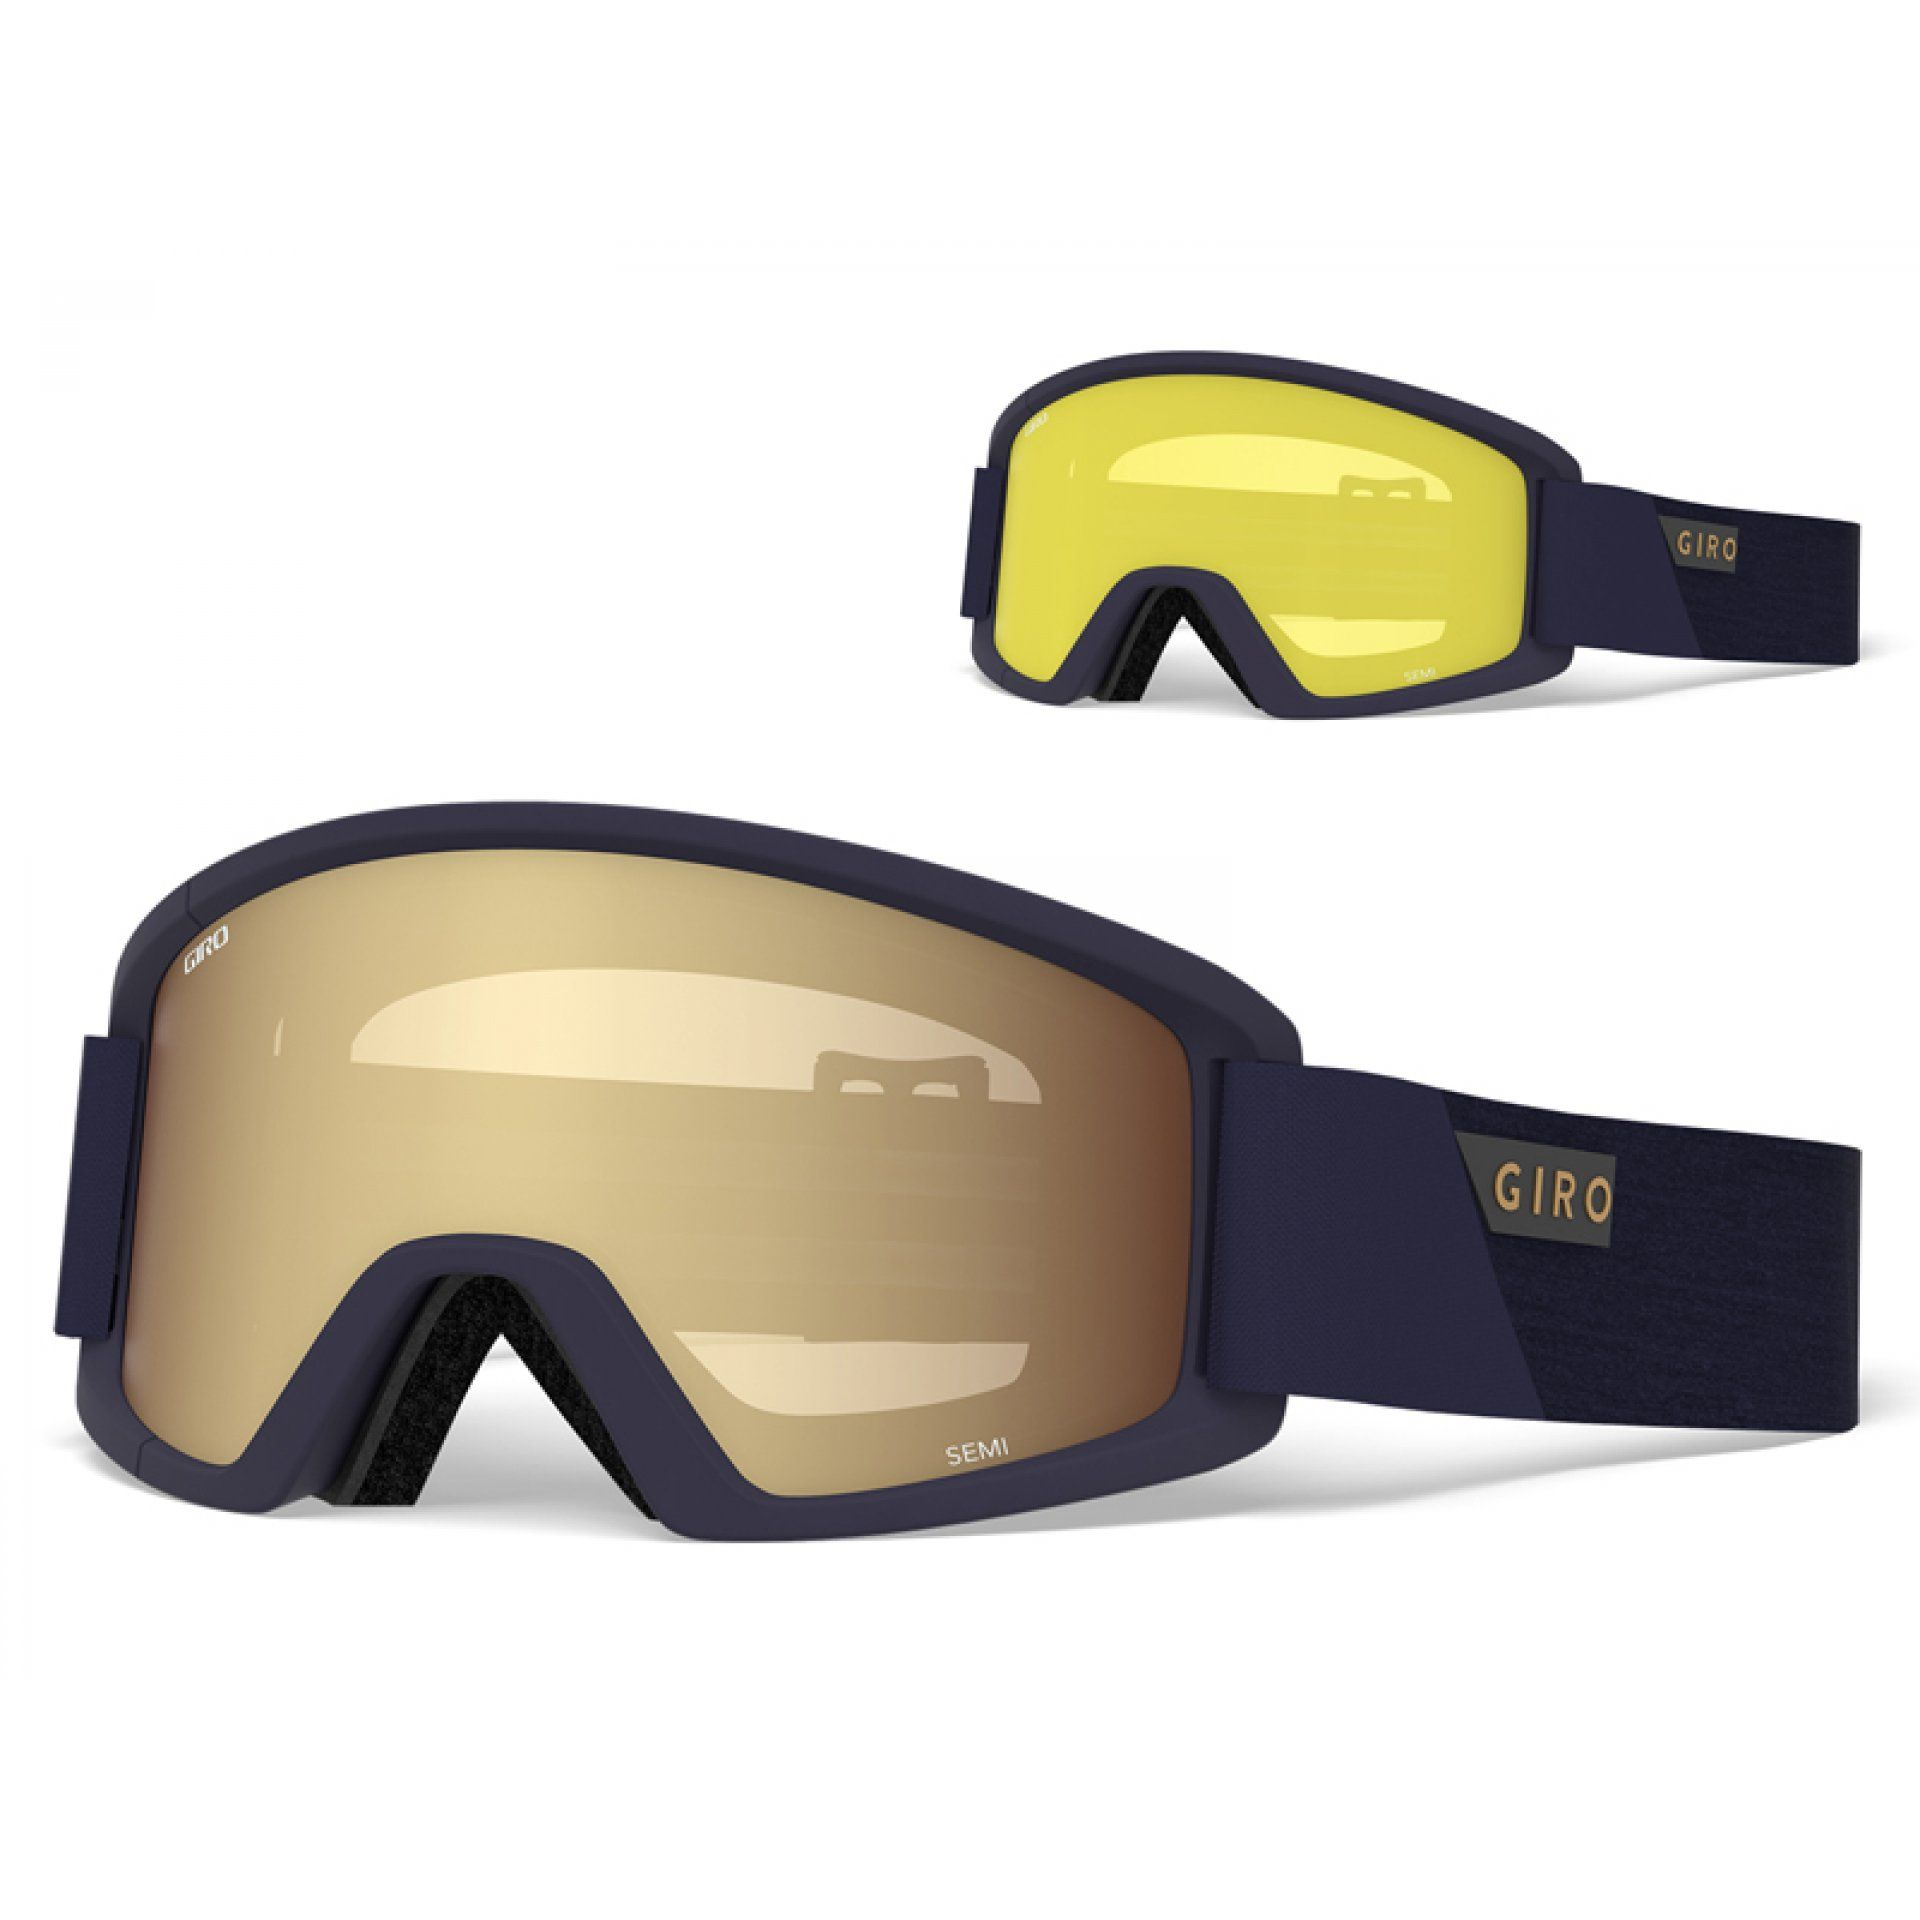 GOGLE GIRO SEMI MIDNIGHT PEAK|AMBER GOLD 1